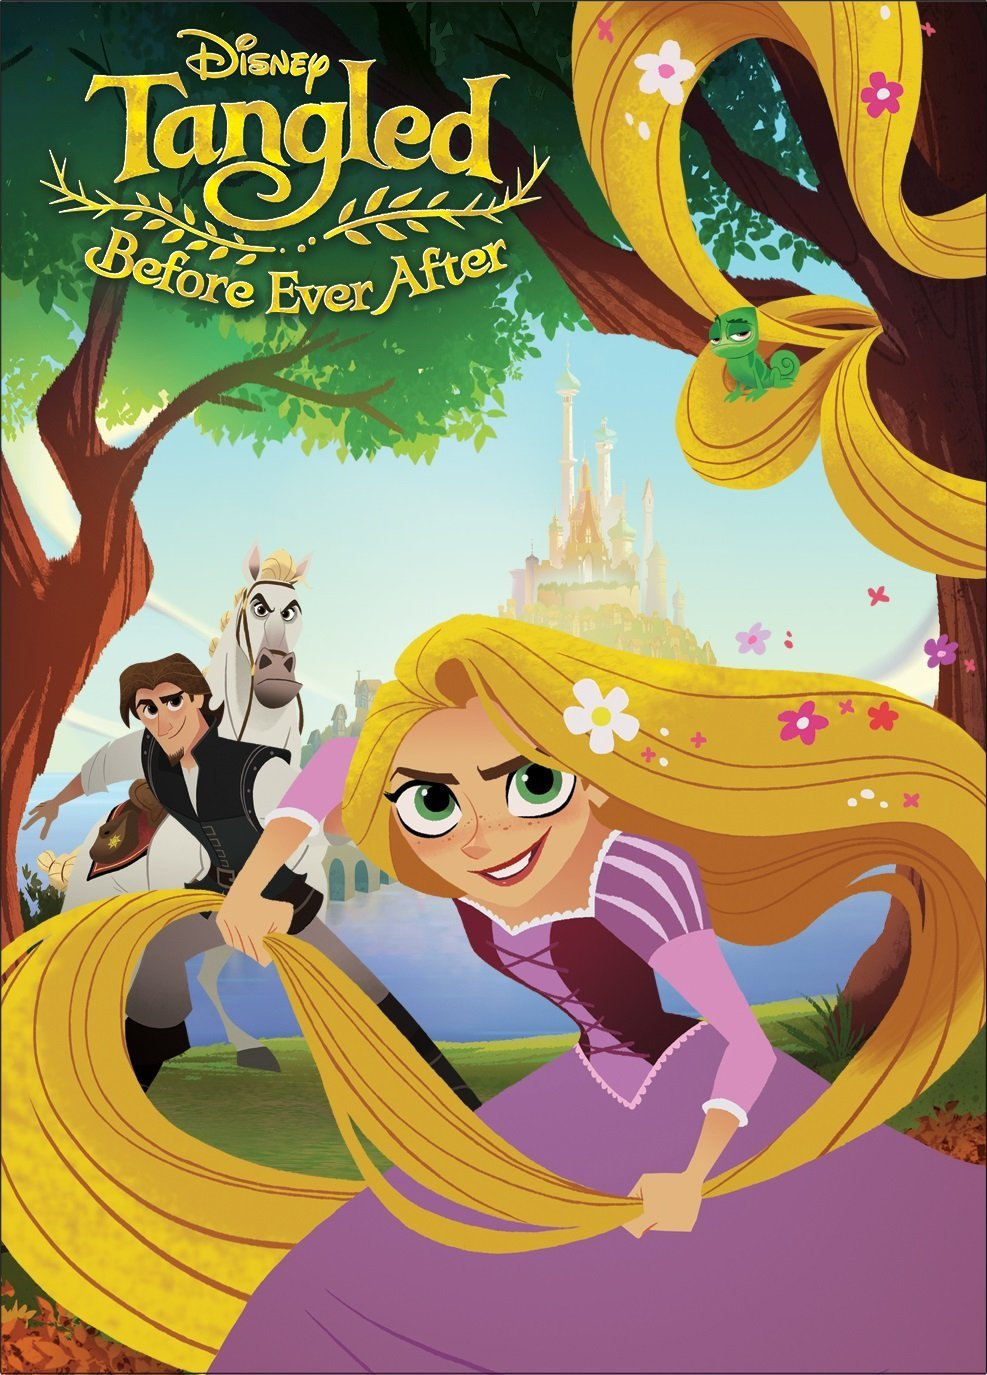 DVD Review - Tangled: Before Ever After